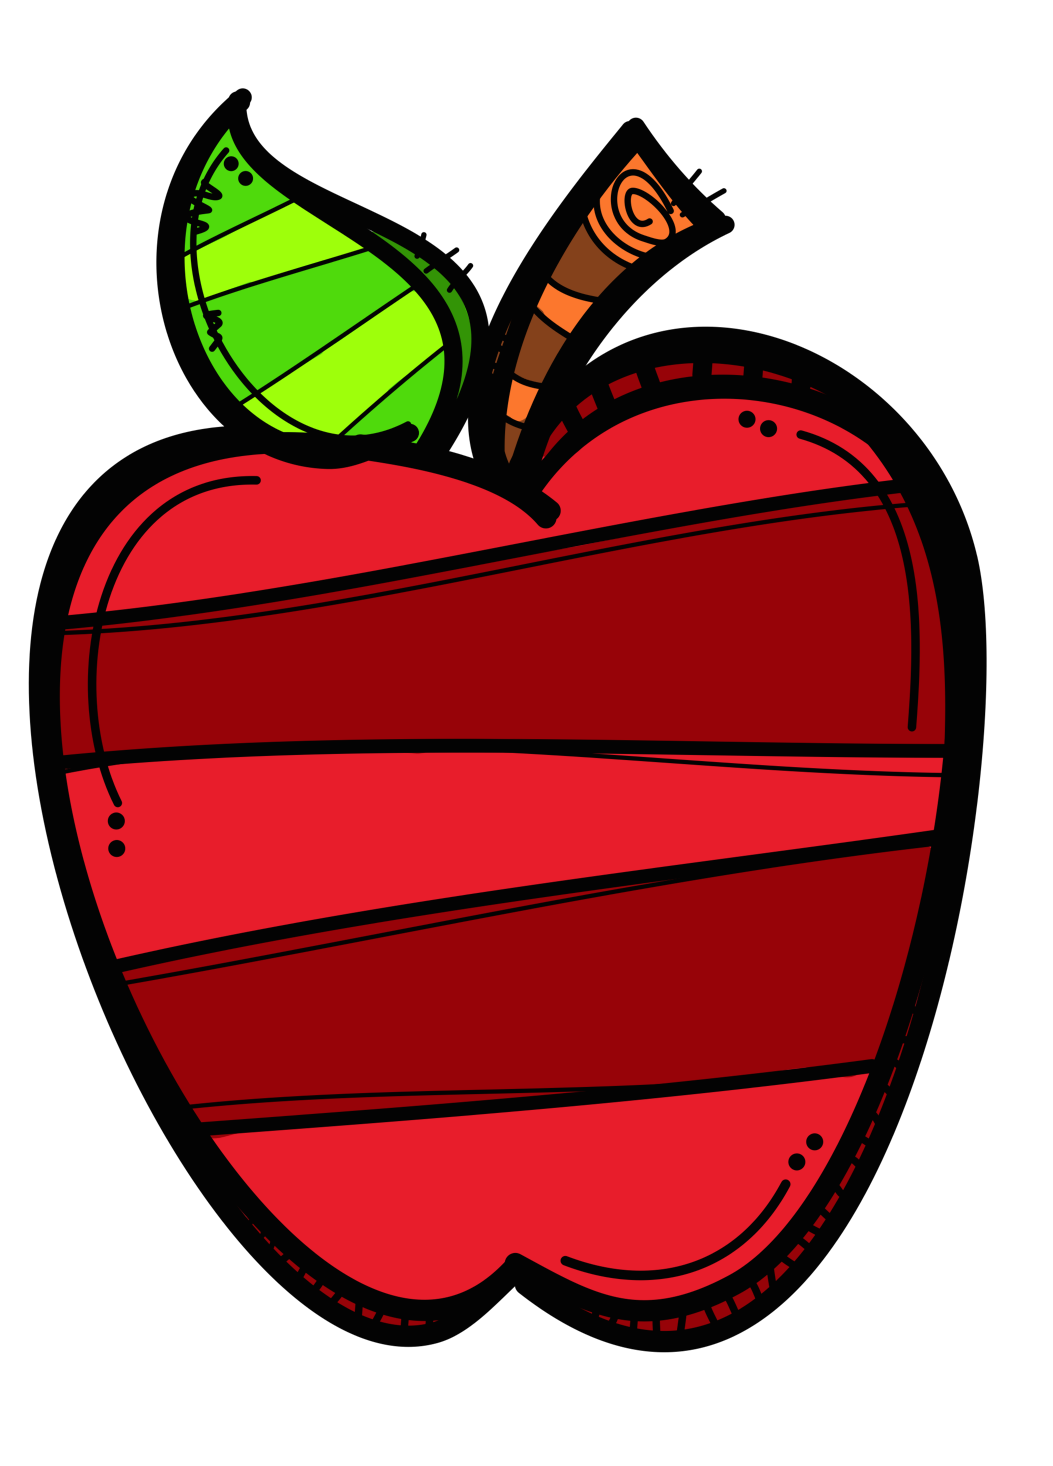 Chalk apple png. Pin by kathleen cummings